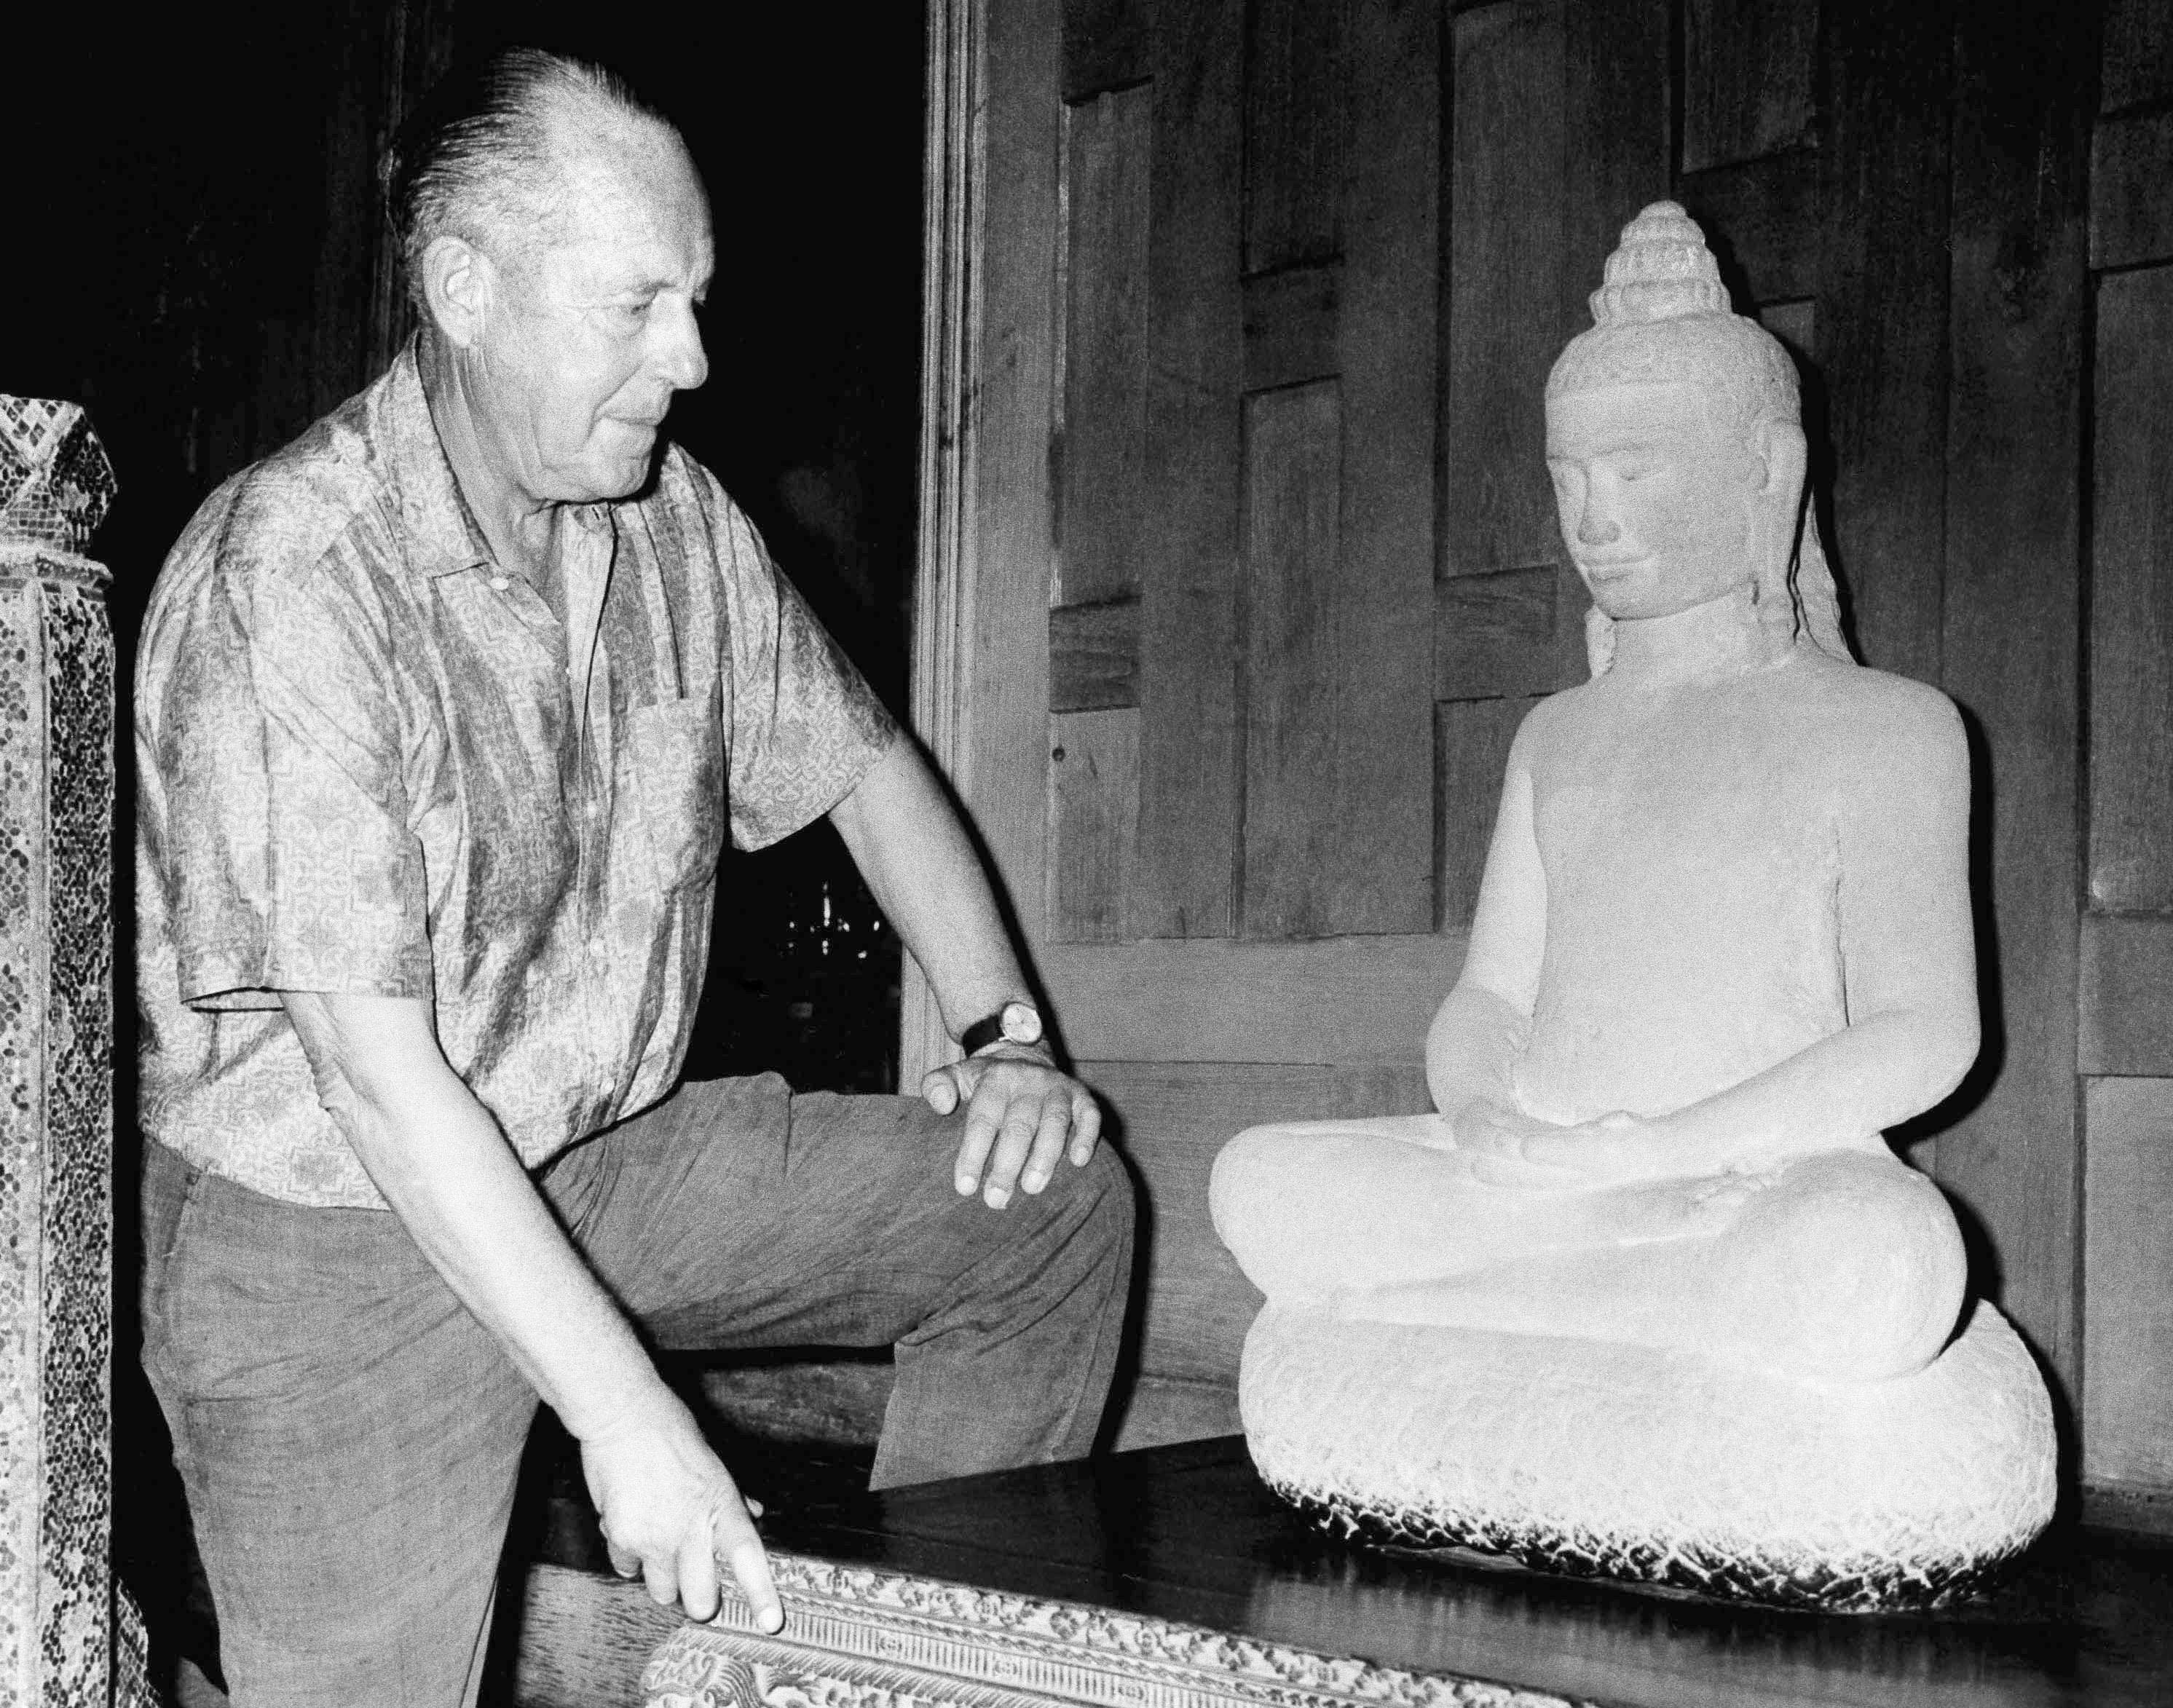 FILE - In this November 1966 file photo, American businessman Jim Thompson views a Buddha statue in Bangkok, Thailand. A new documentary is set to stir fresh debate over one of Asia's most enduring mysteries: What happened to Jim Thompson, Thailand's legendary silk king. (AP Photo/File)